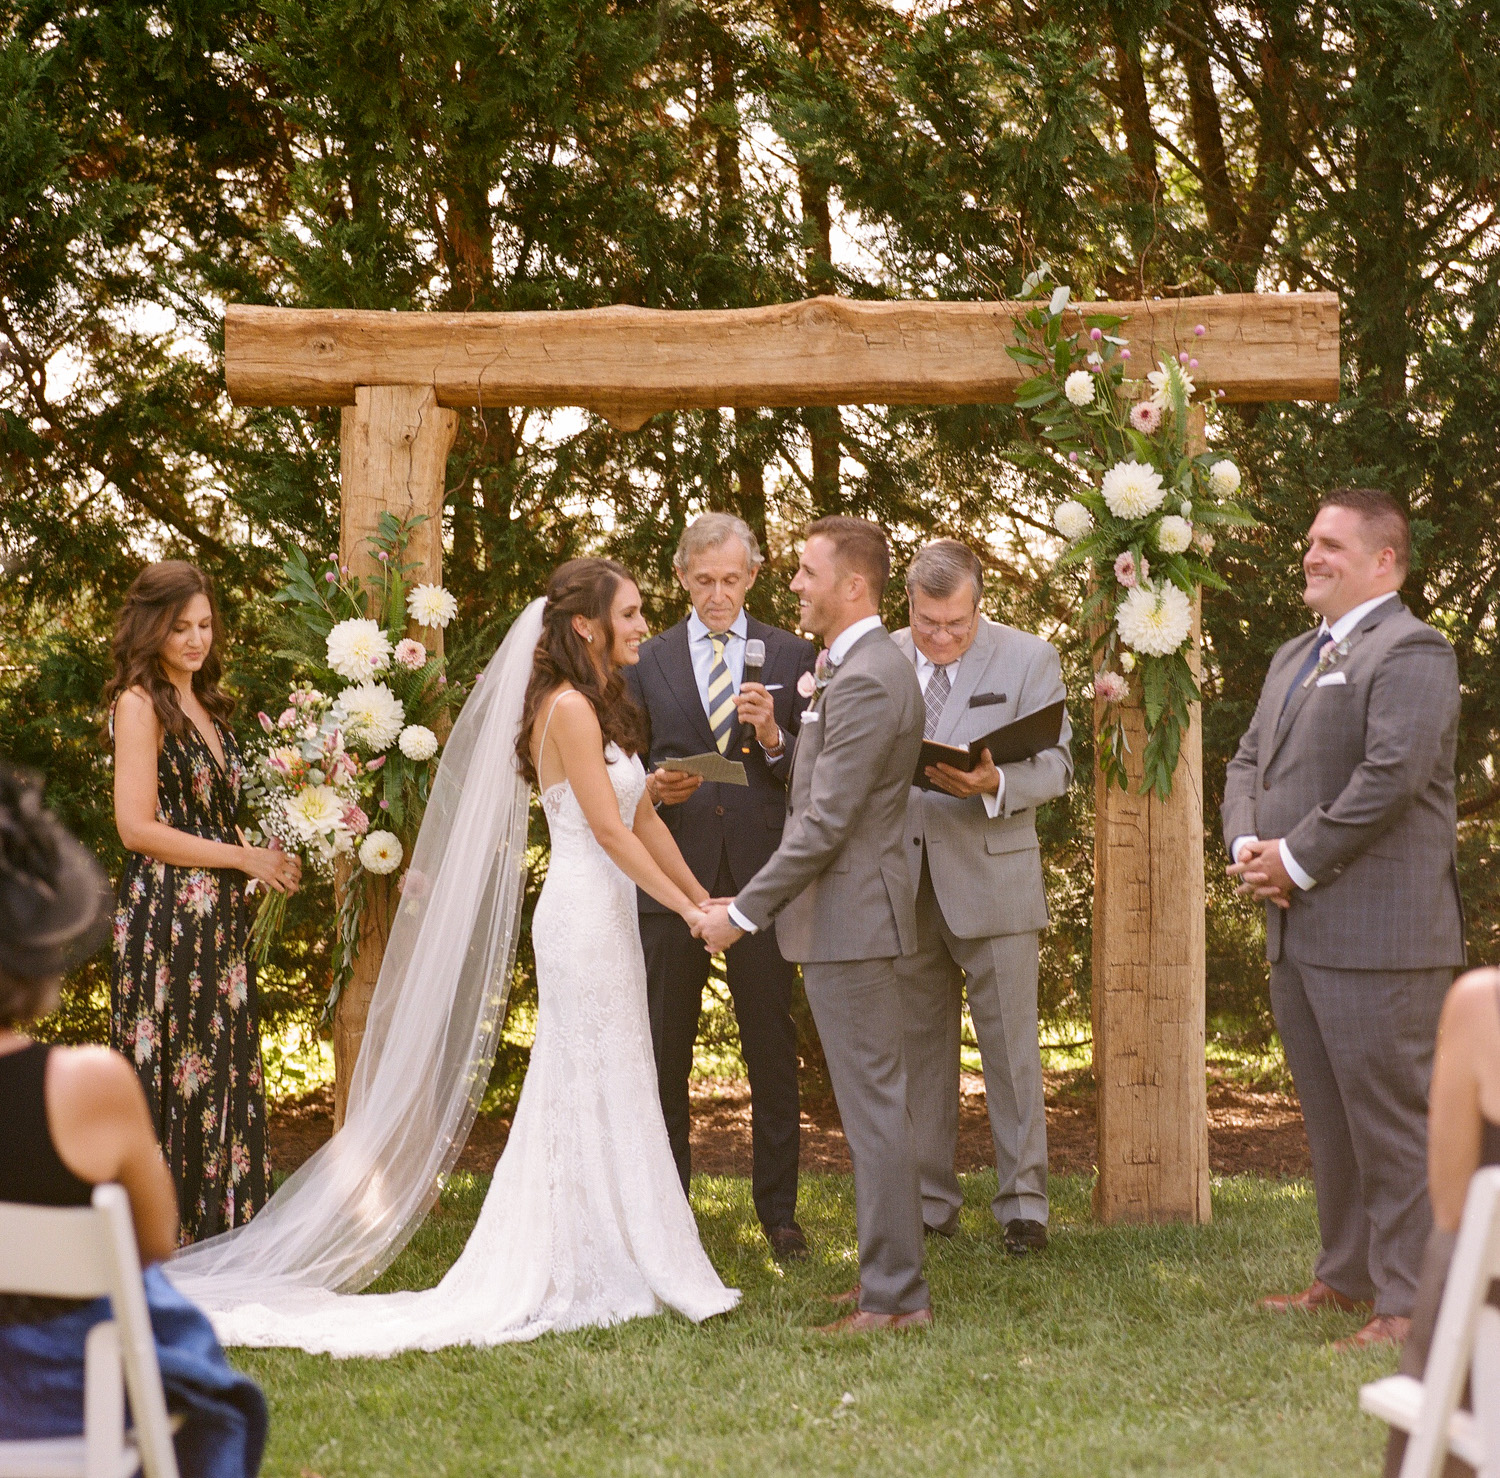 image of bride and groom under arch at wedding ceremony at private residence in Gettysburg